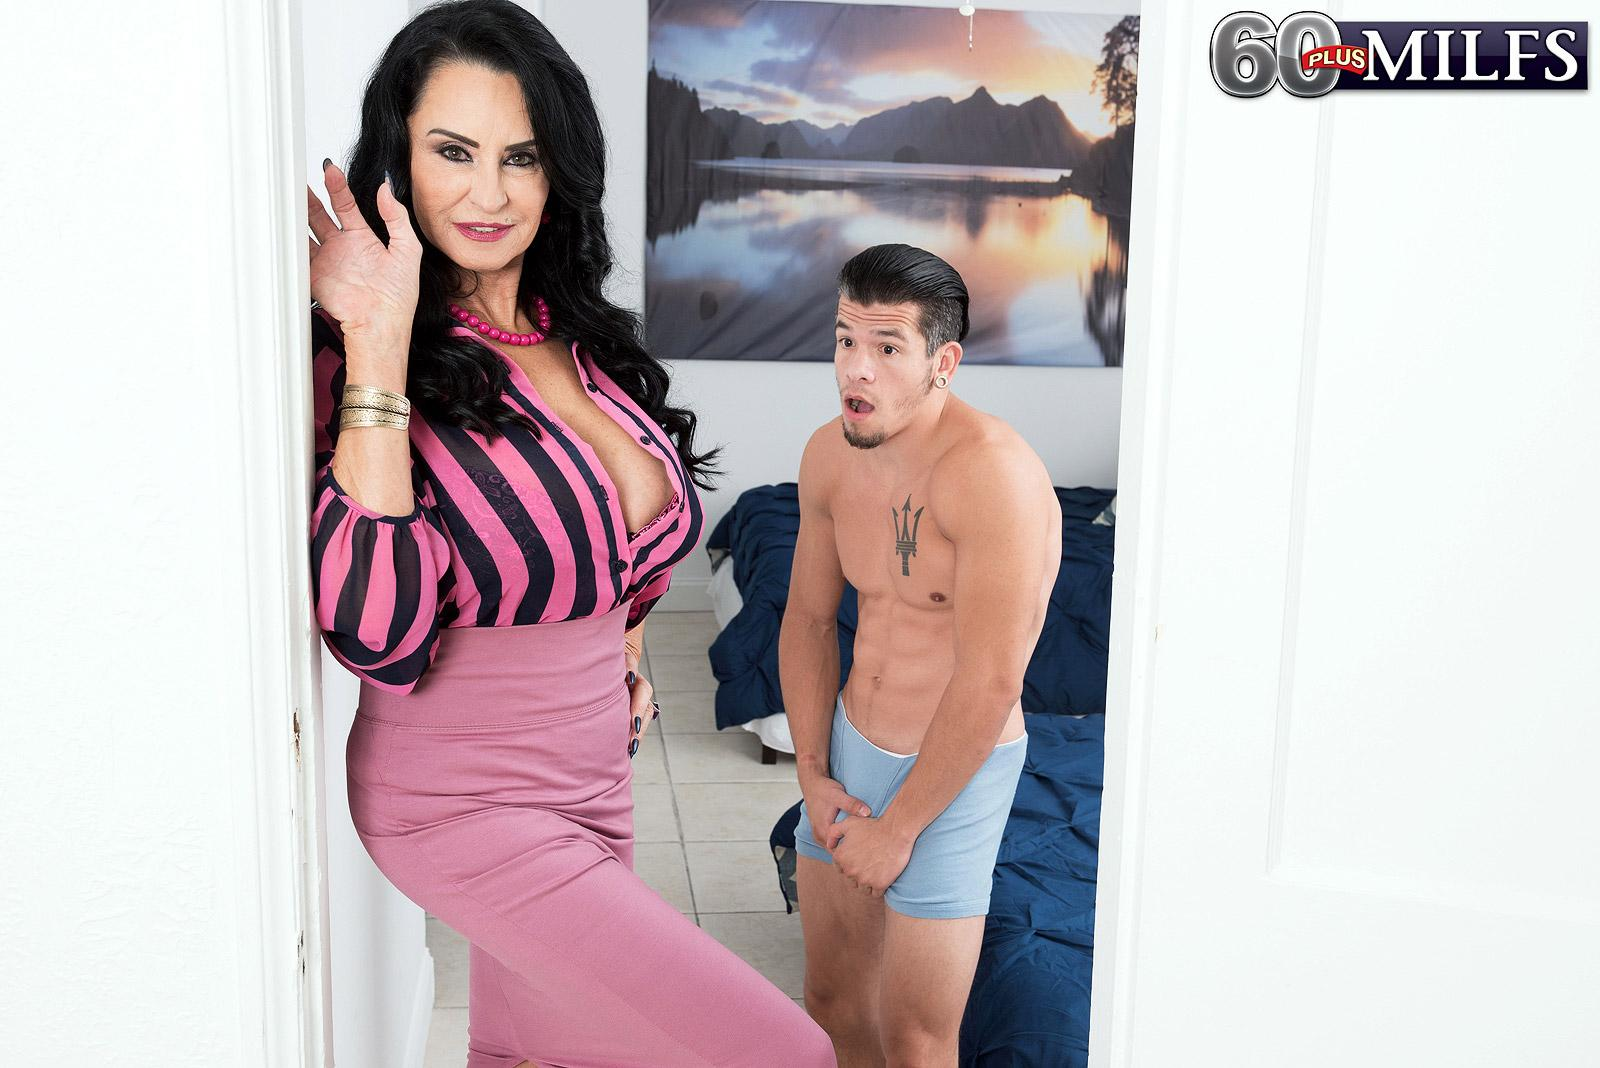 Over 60 MILF Rita Daniels entices her stepson and masturbates his pecker after disrobing him